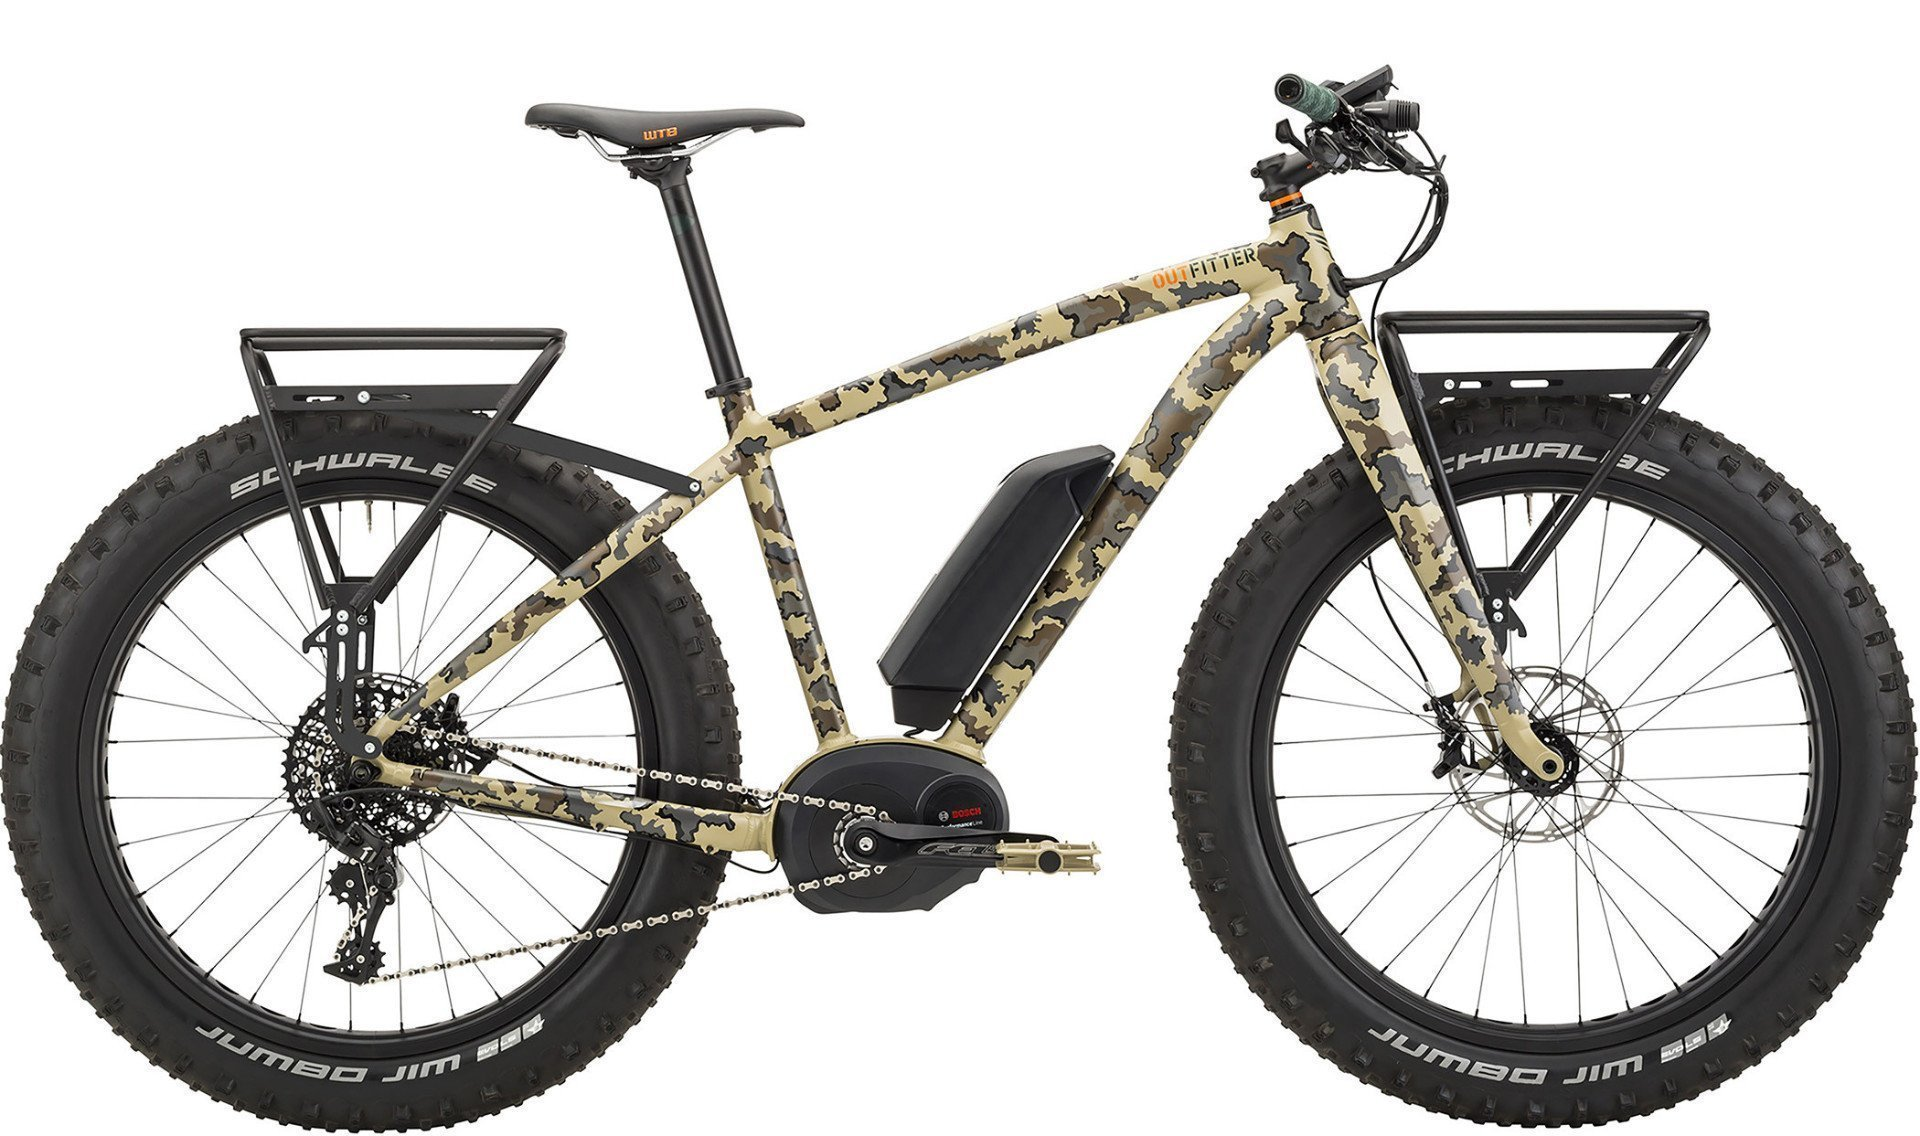 Electric Bicycle For Sale >> E Bike Black Friday Sale High Country Ebikes Electric